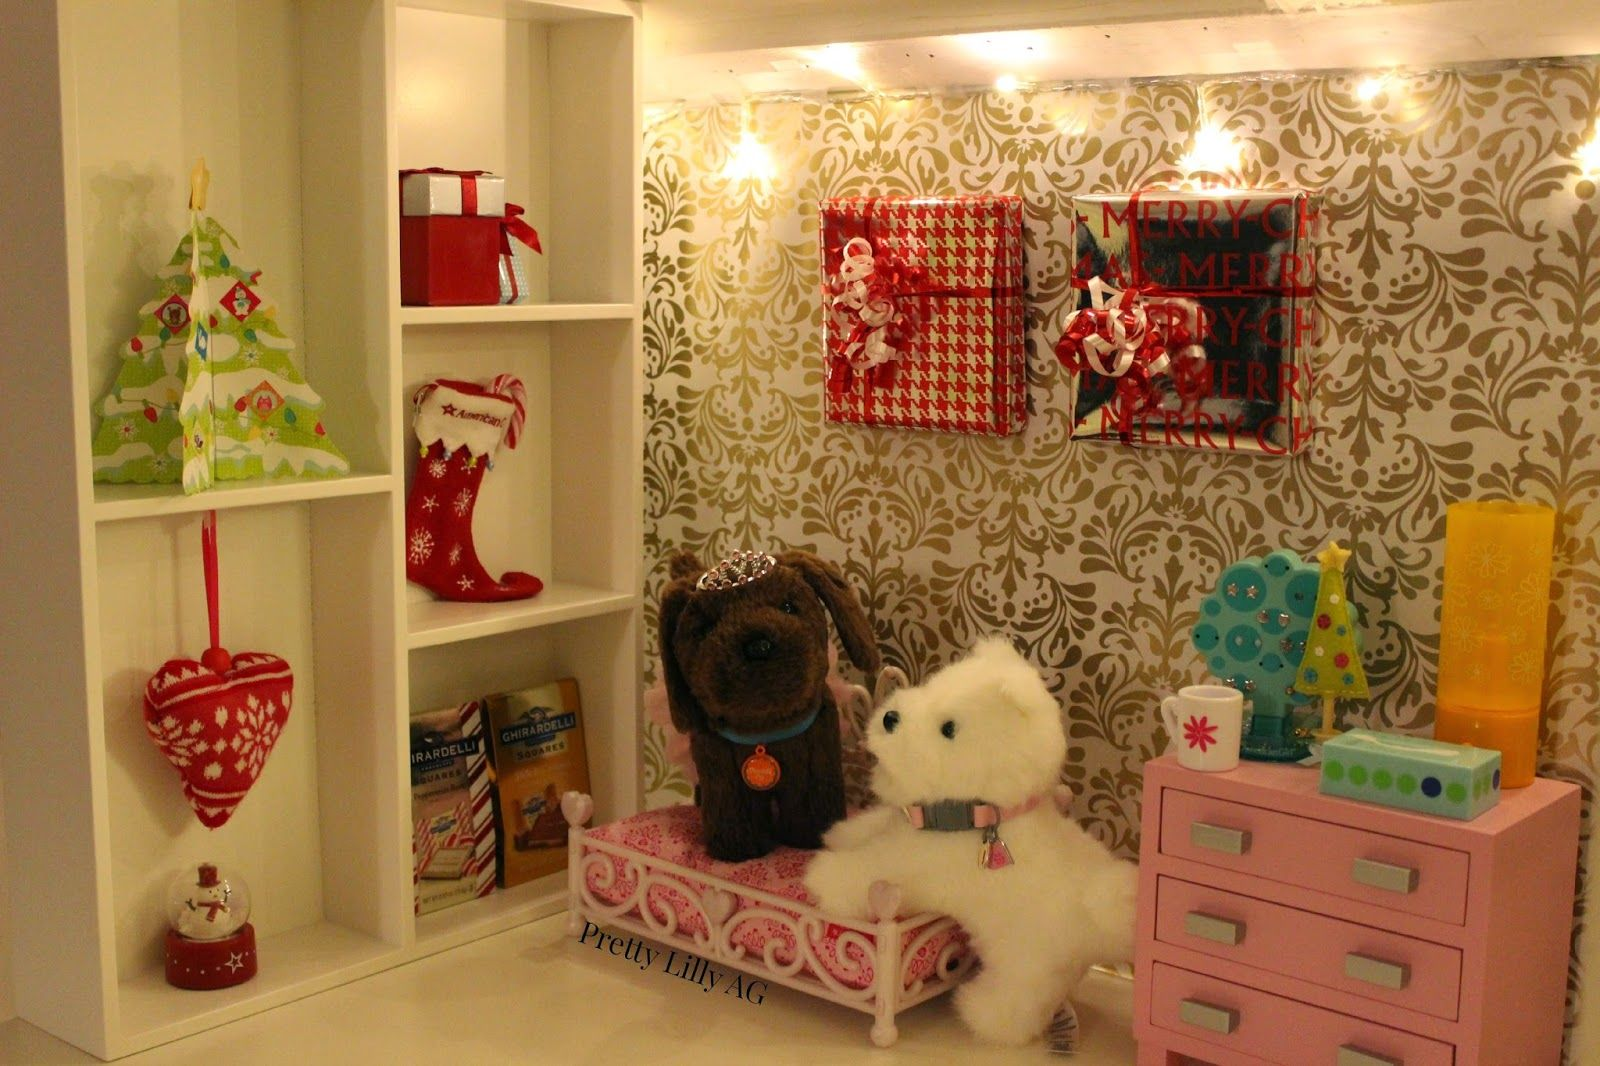 Pretty Lilly An American Girl Christmas Doll Bedroom Decorations